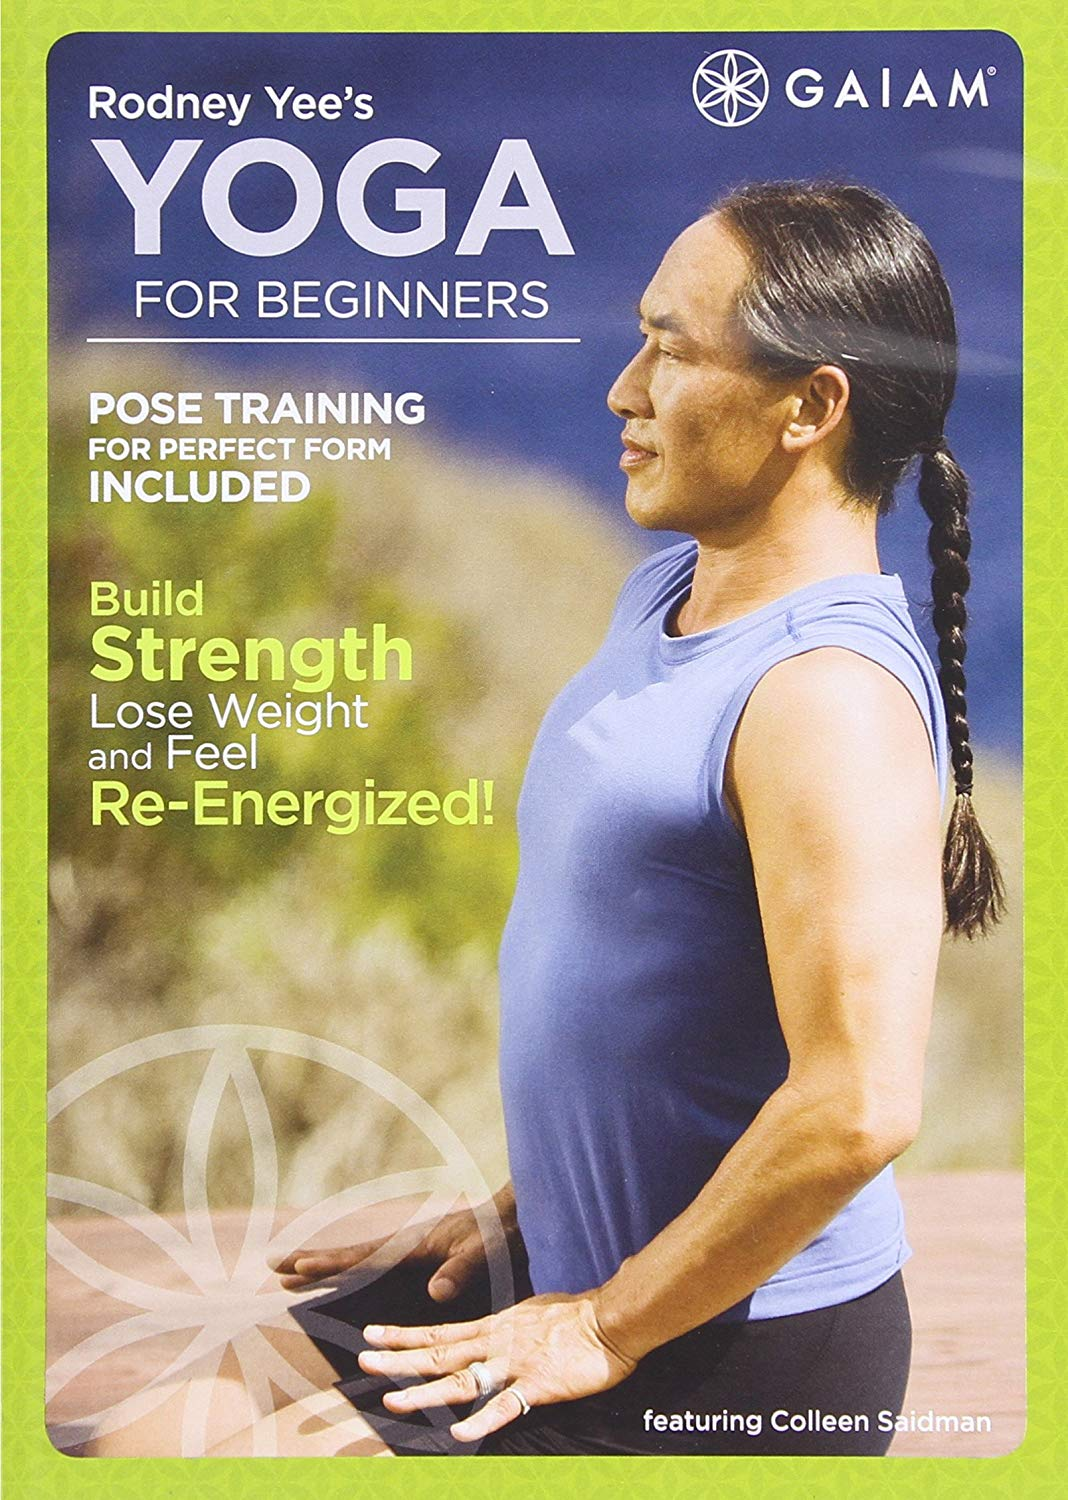 Rodney Yee's Yoga for Beginners | Best Yoga for Beginners DVDs